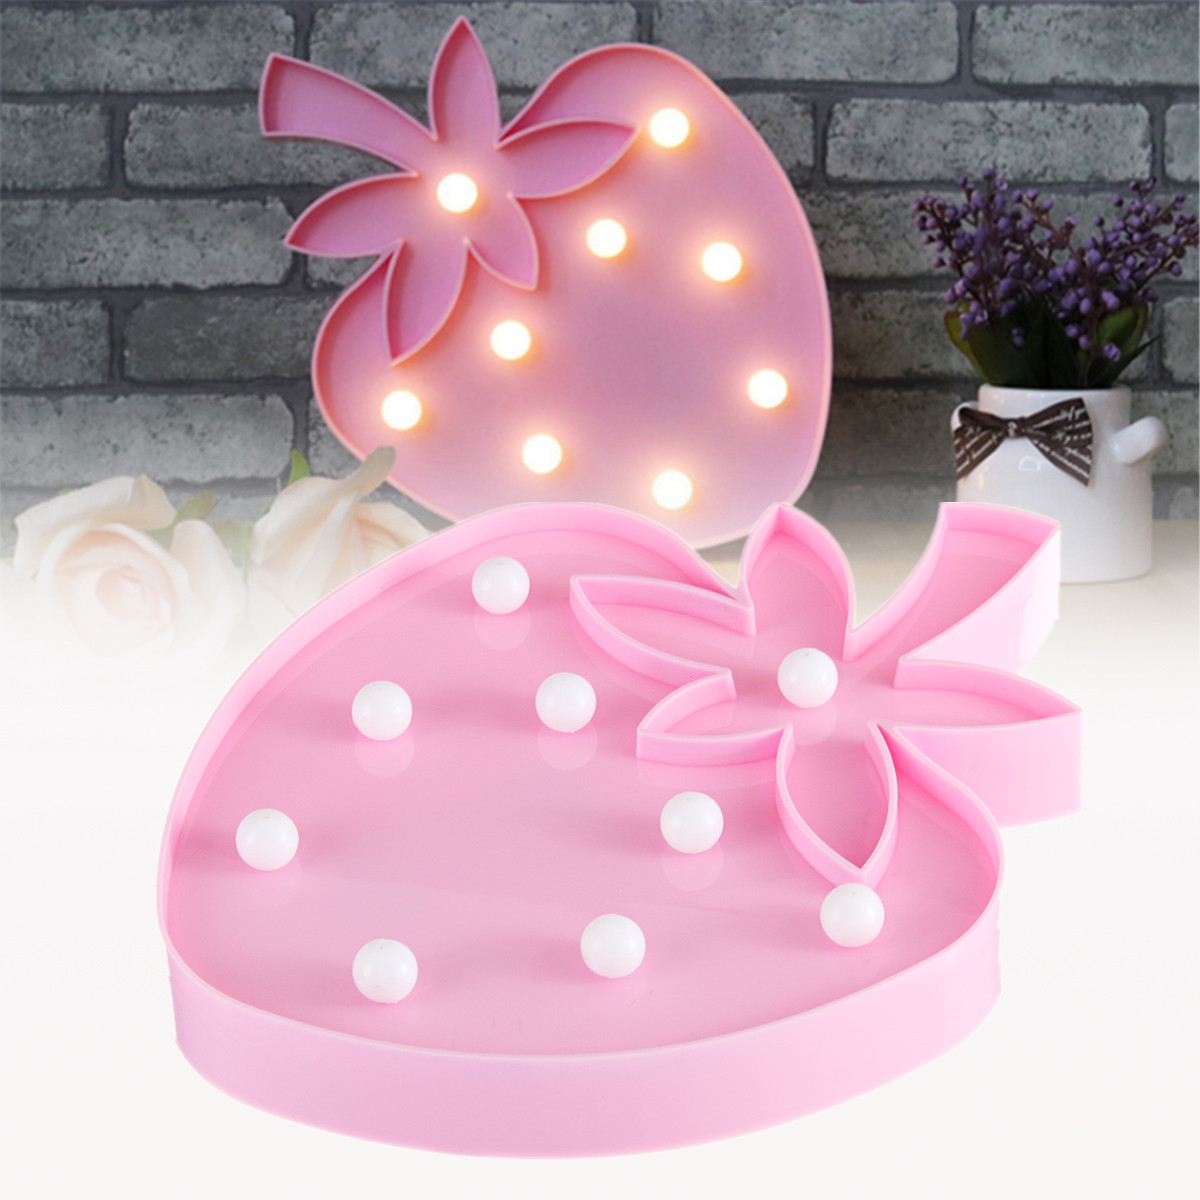 Strawberry Novelty Battery Operated LED Circus Marquee Night Light Decorative Wall Lamp Baby Kids Bedroom Home Decor Gifts